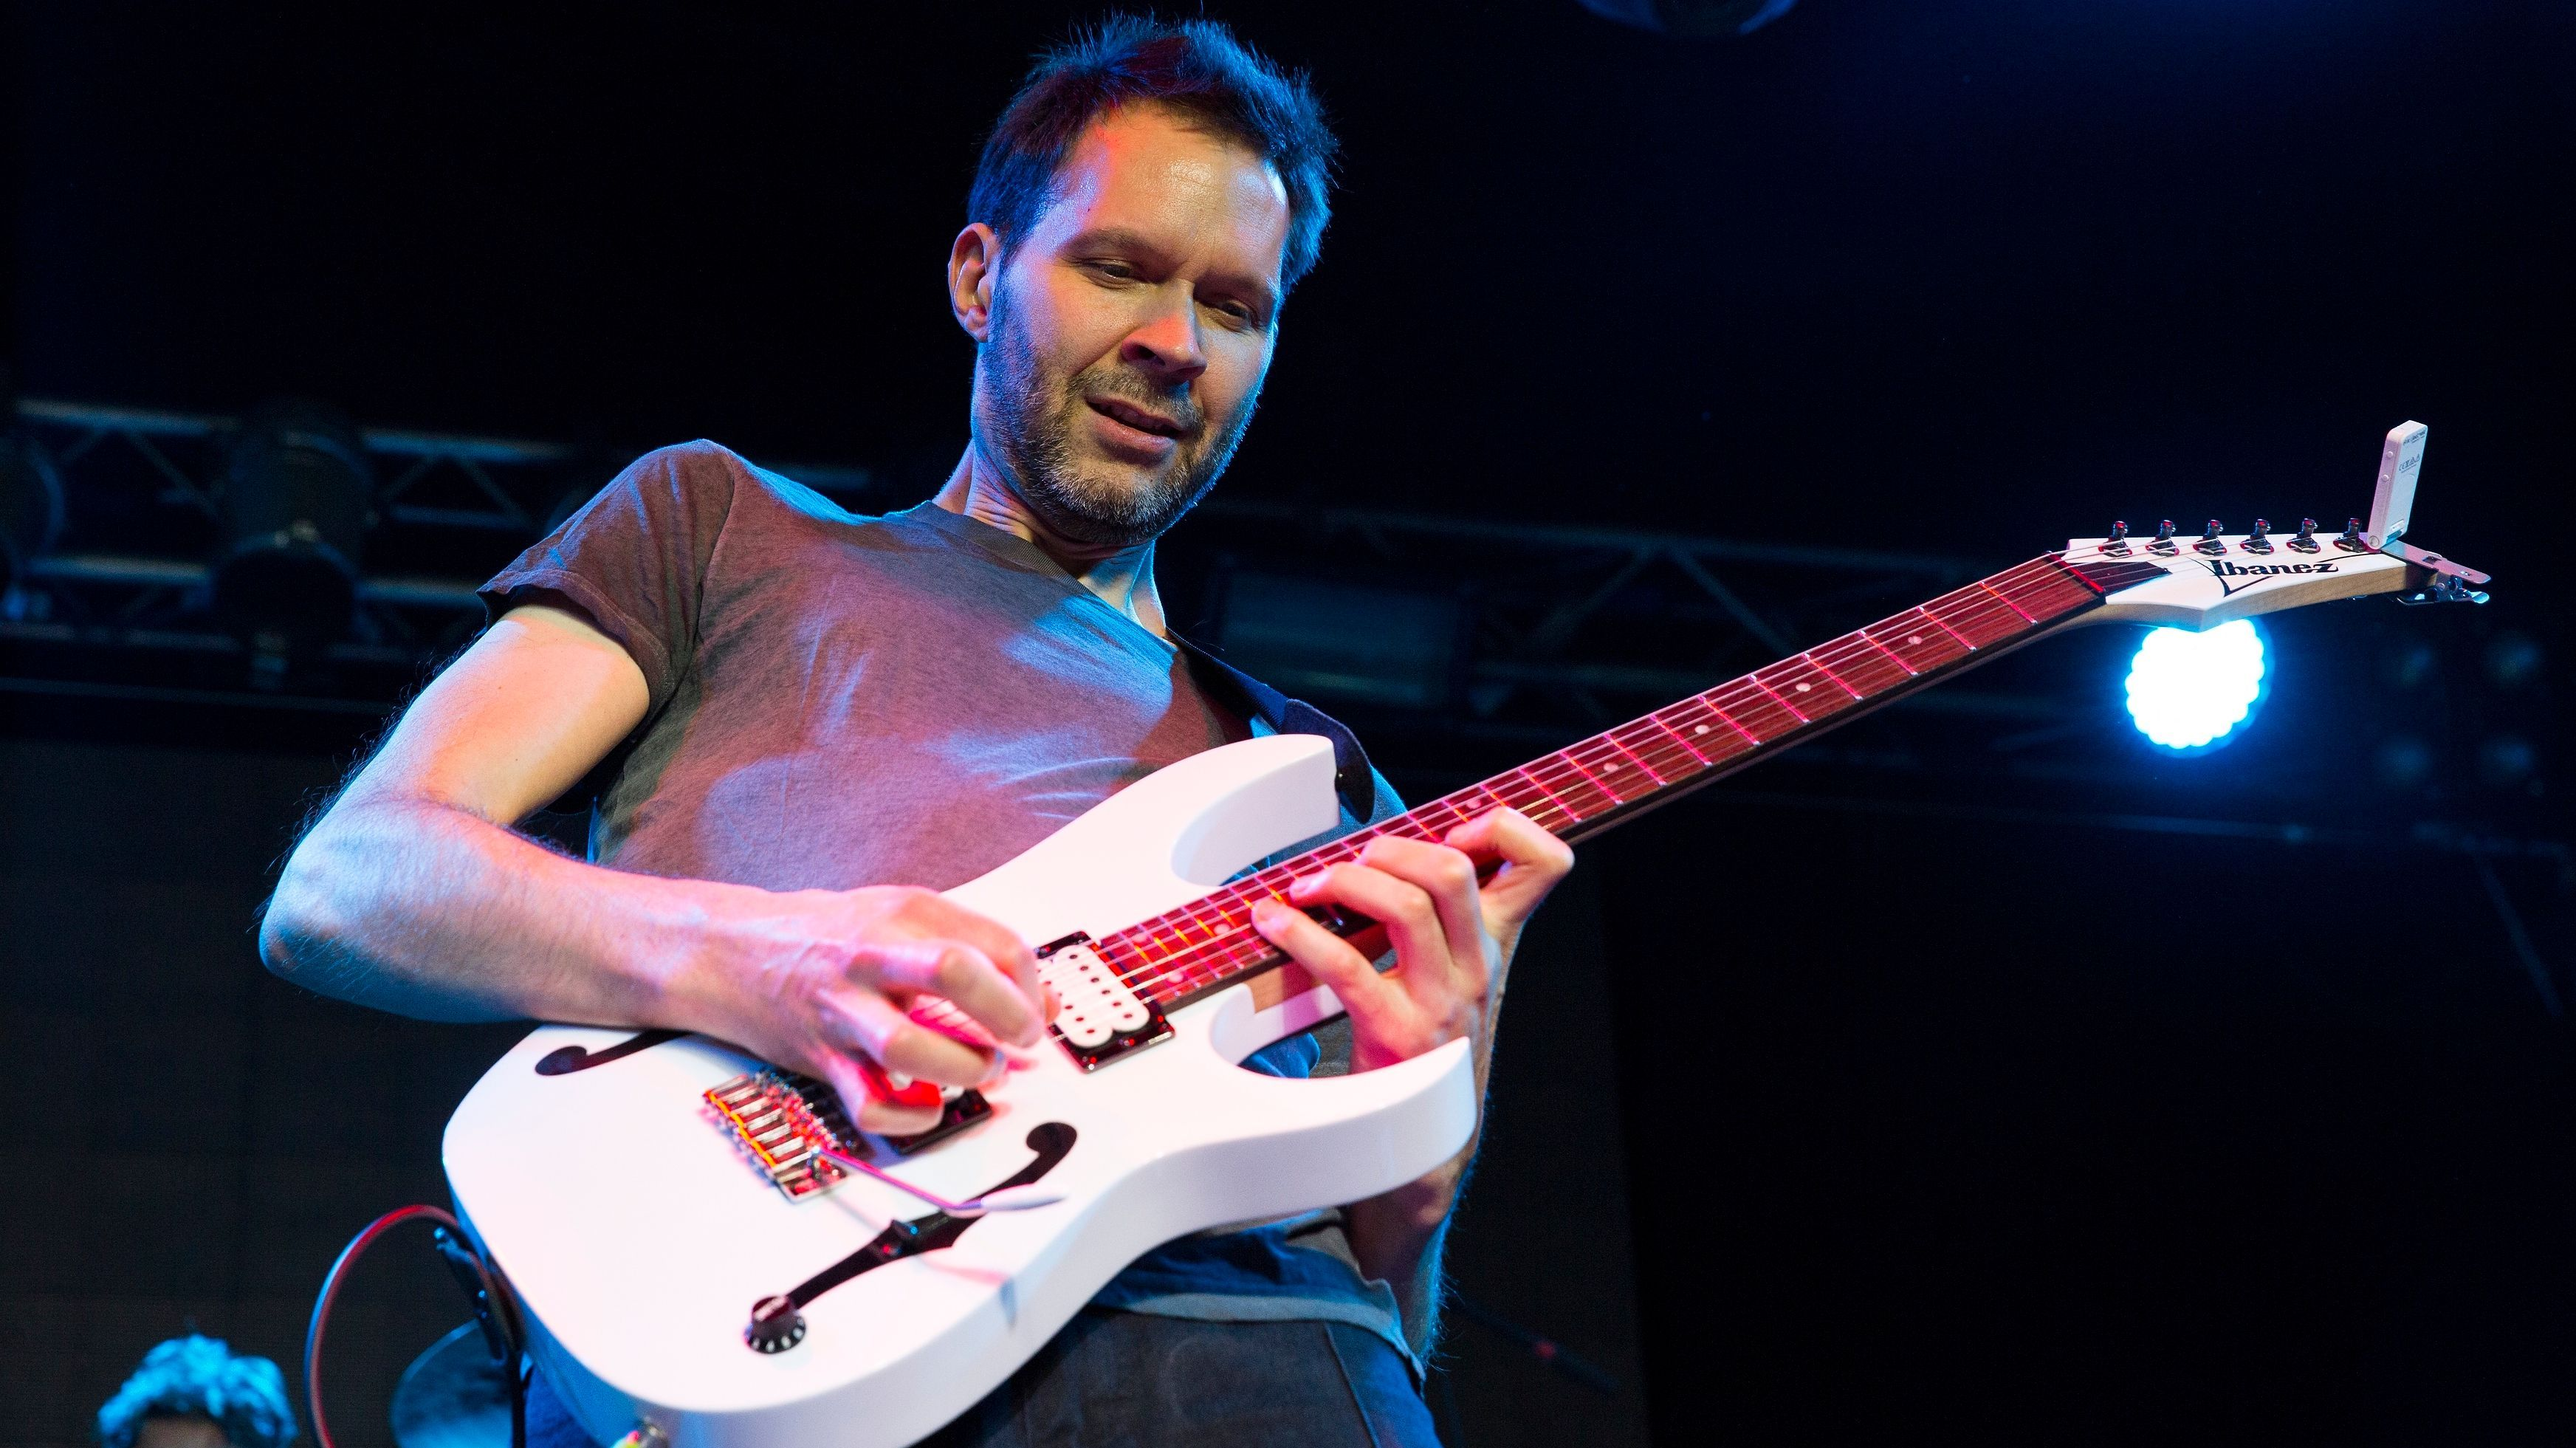 Paul Gilbert Reveals The Really Dangerous Trend He Sees Among Youtube Guitarists In 2020 Guitarist Paul Gilbert Youtube